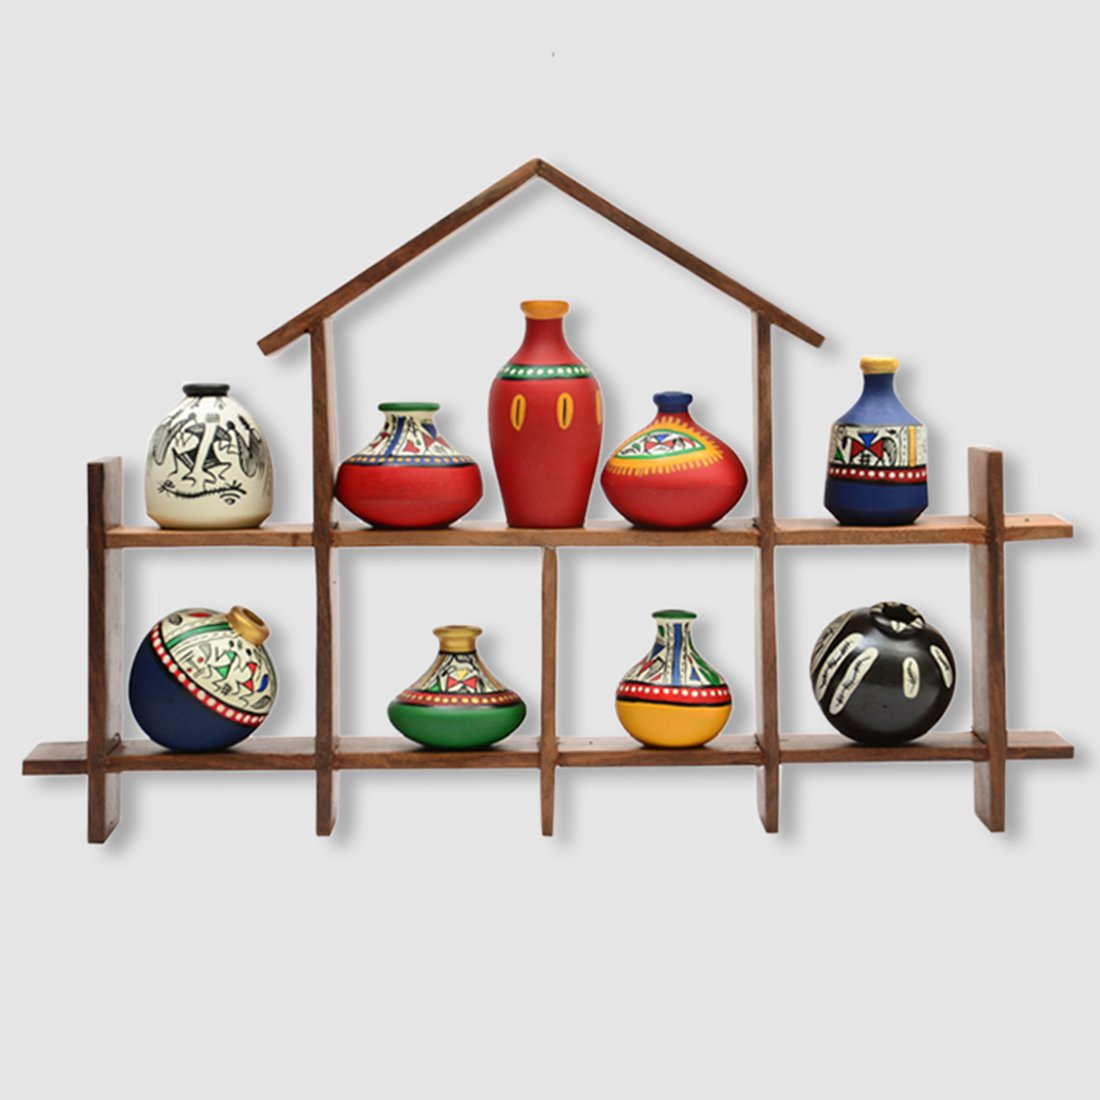 Terracotta decor pieces